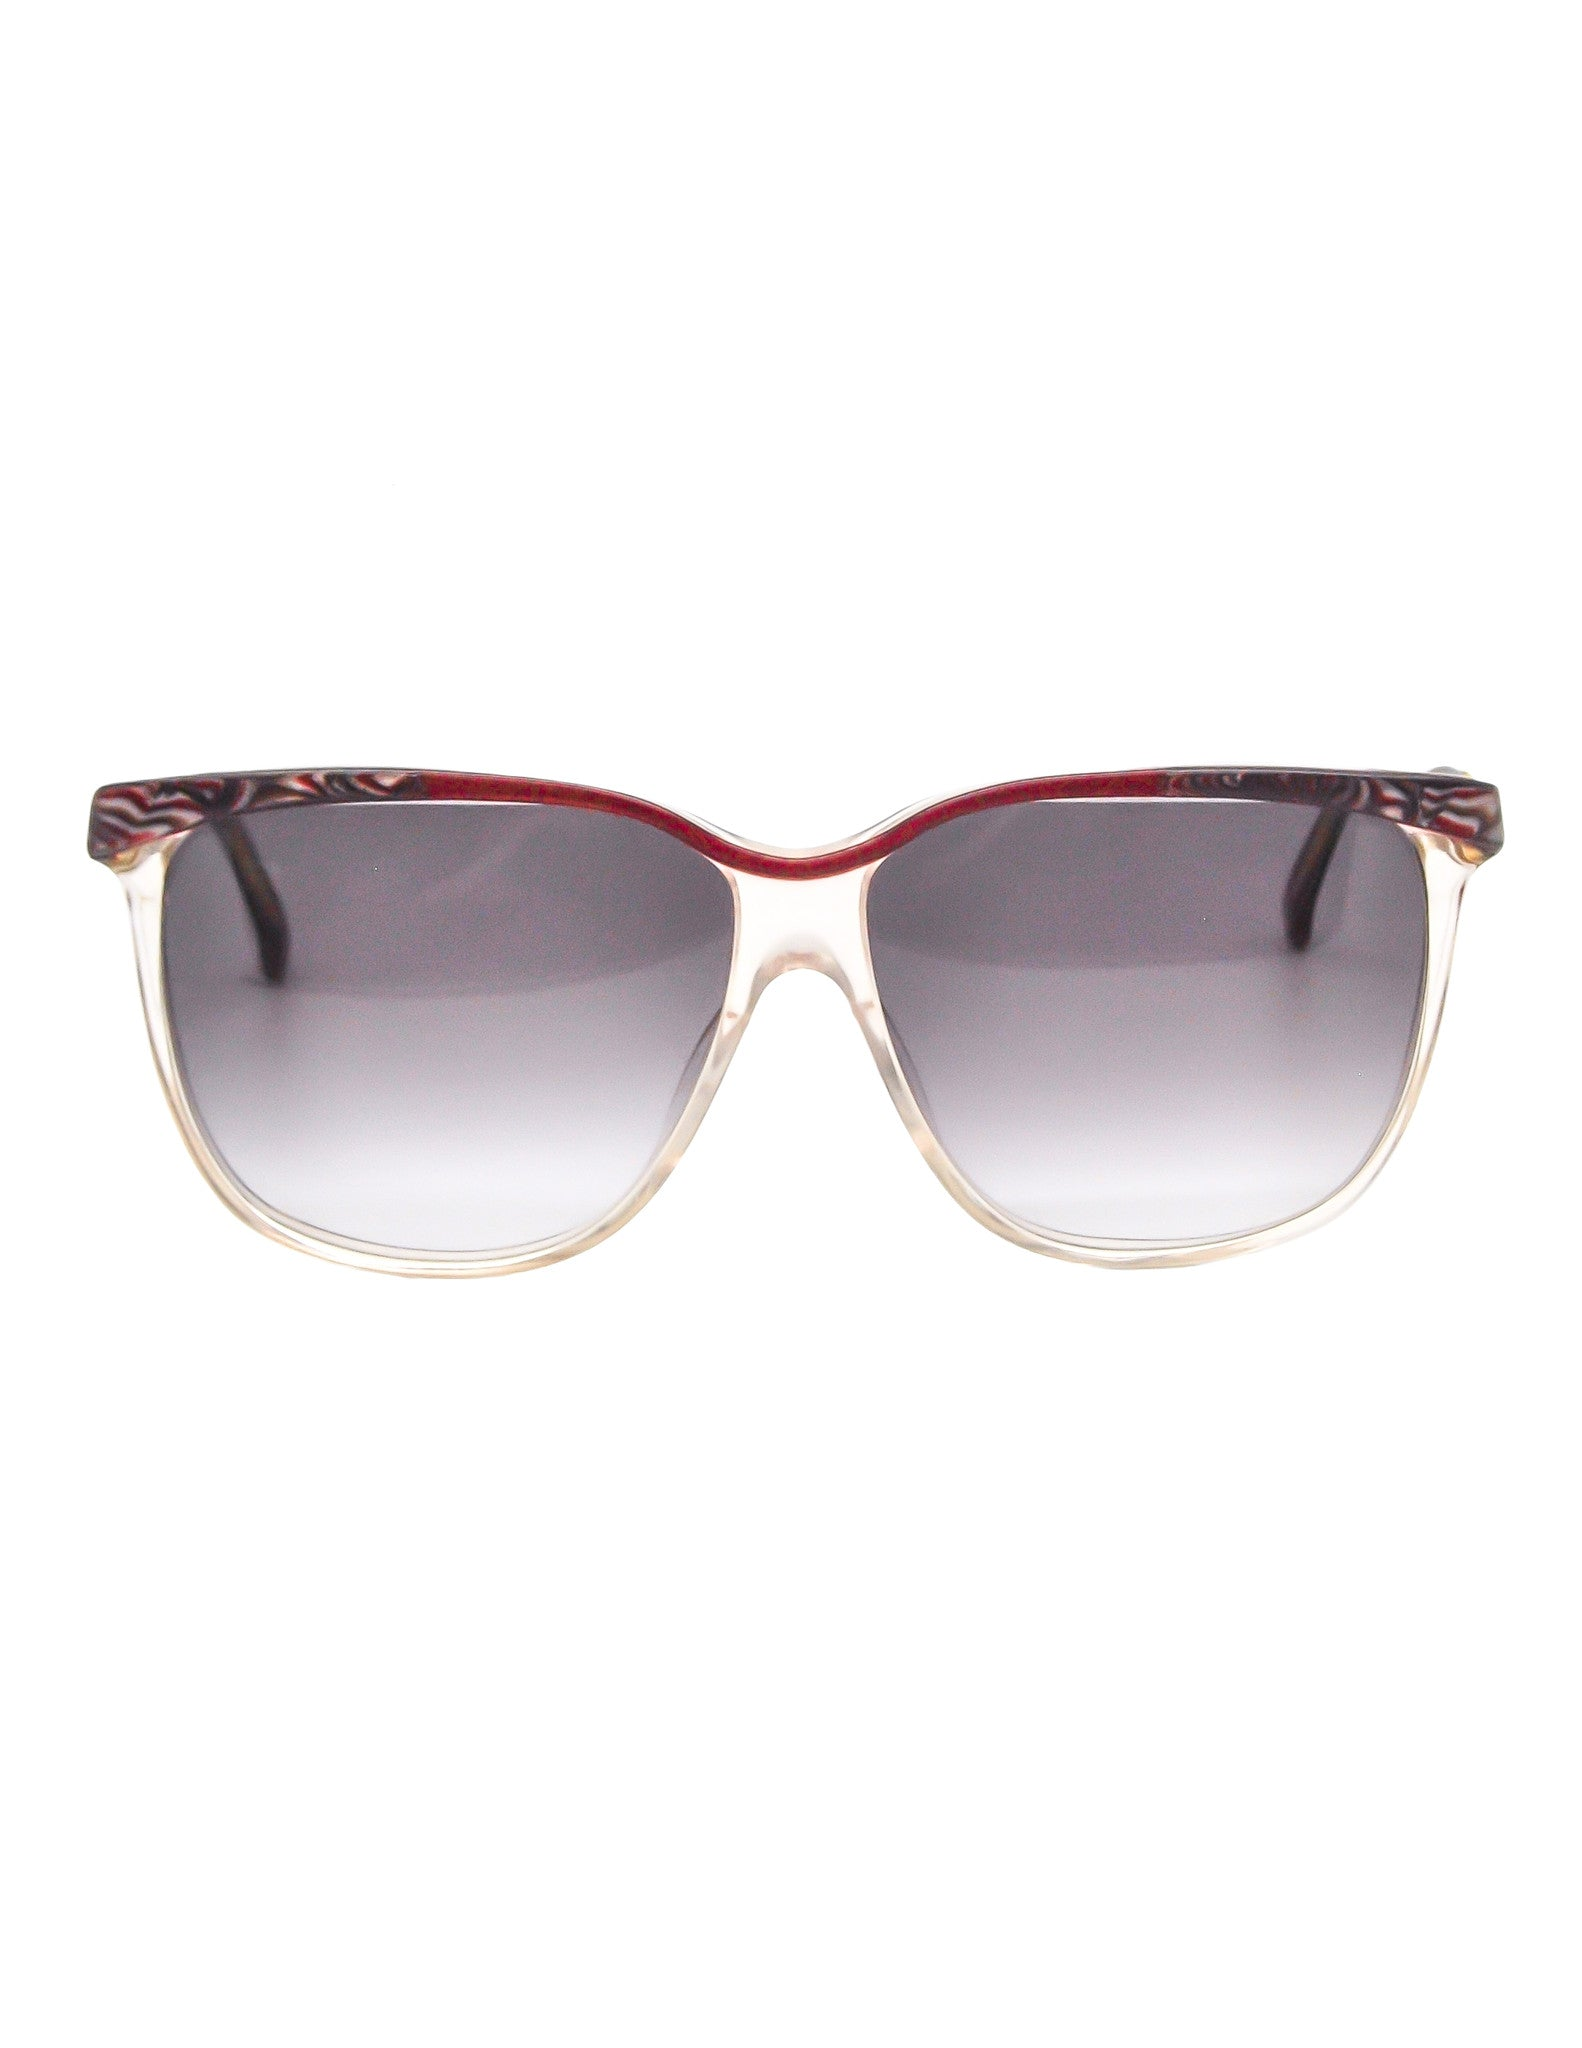 Gucci Vintage Maroon Marble and Clear Sunglasses - Amarcord Vintage Fashion  - 1